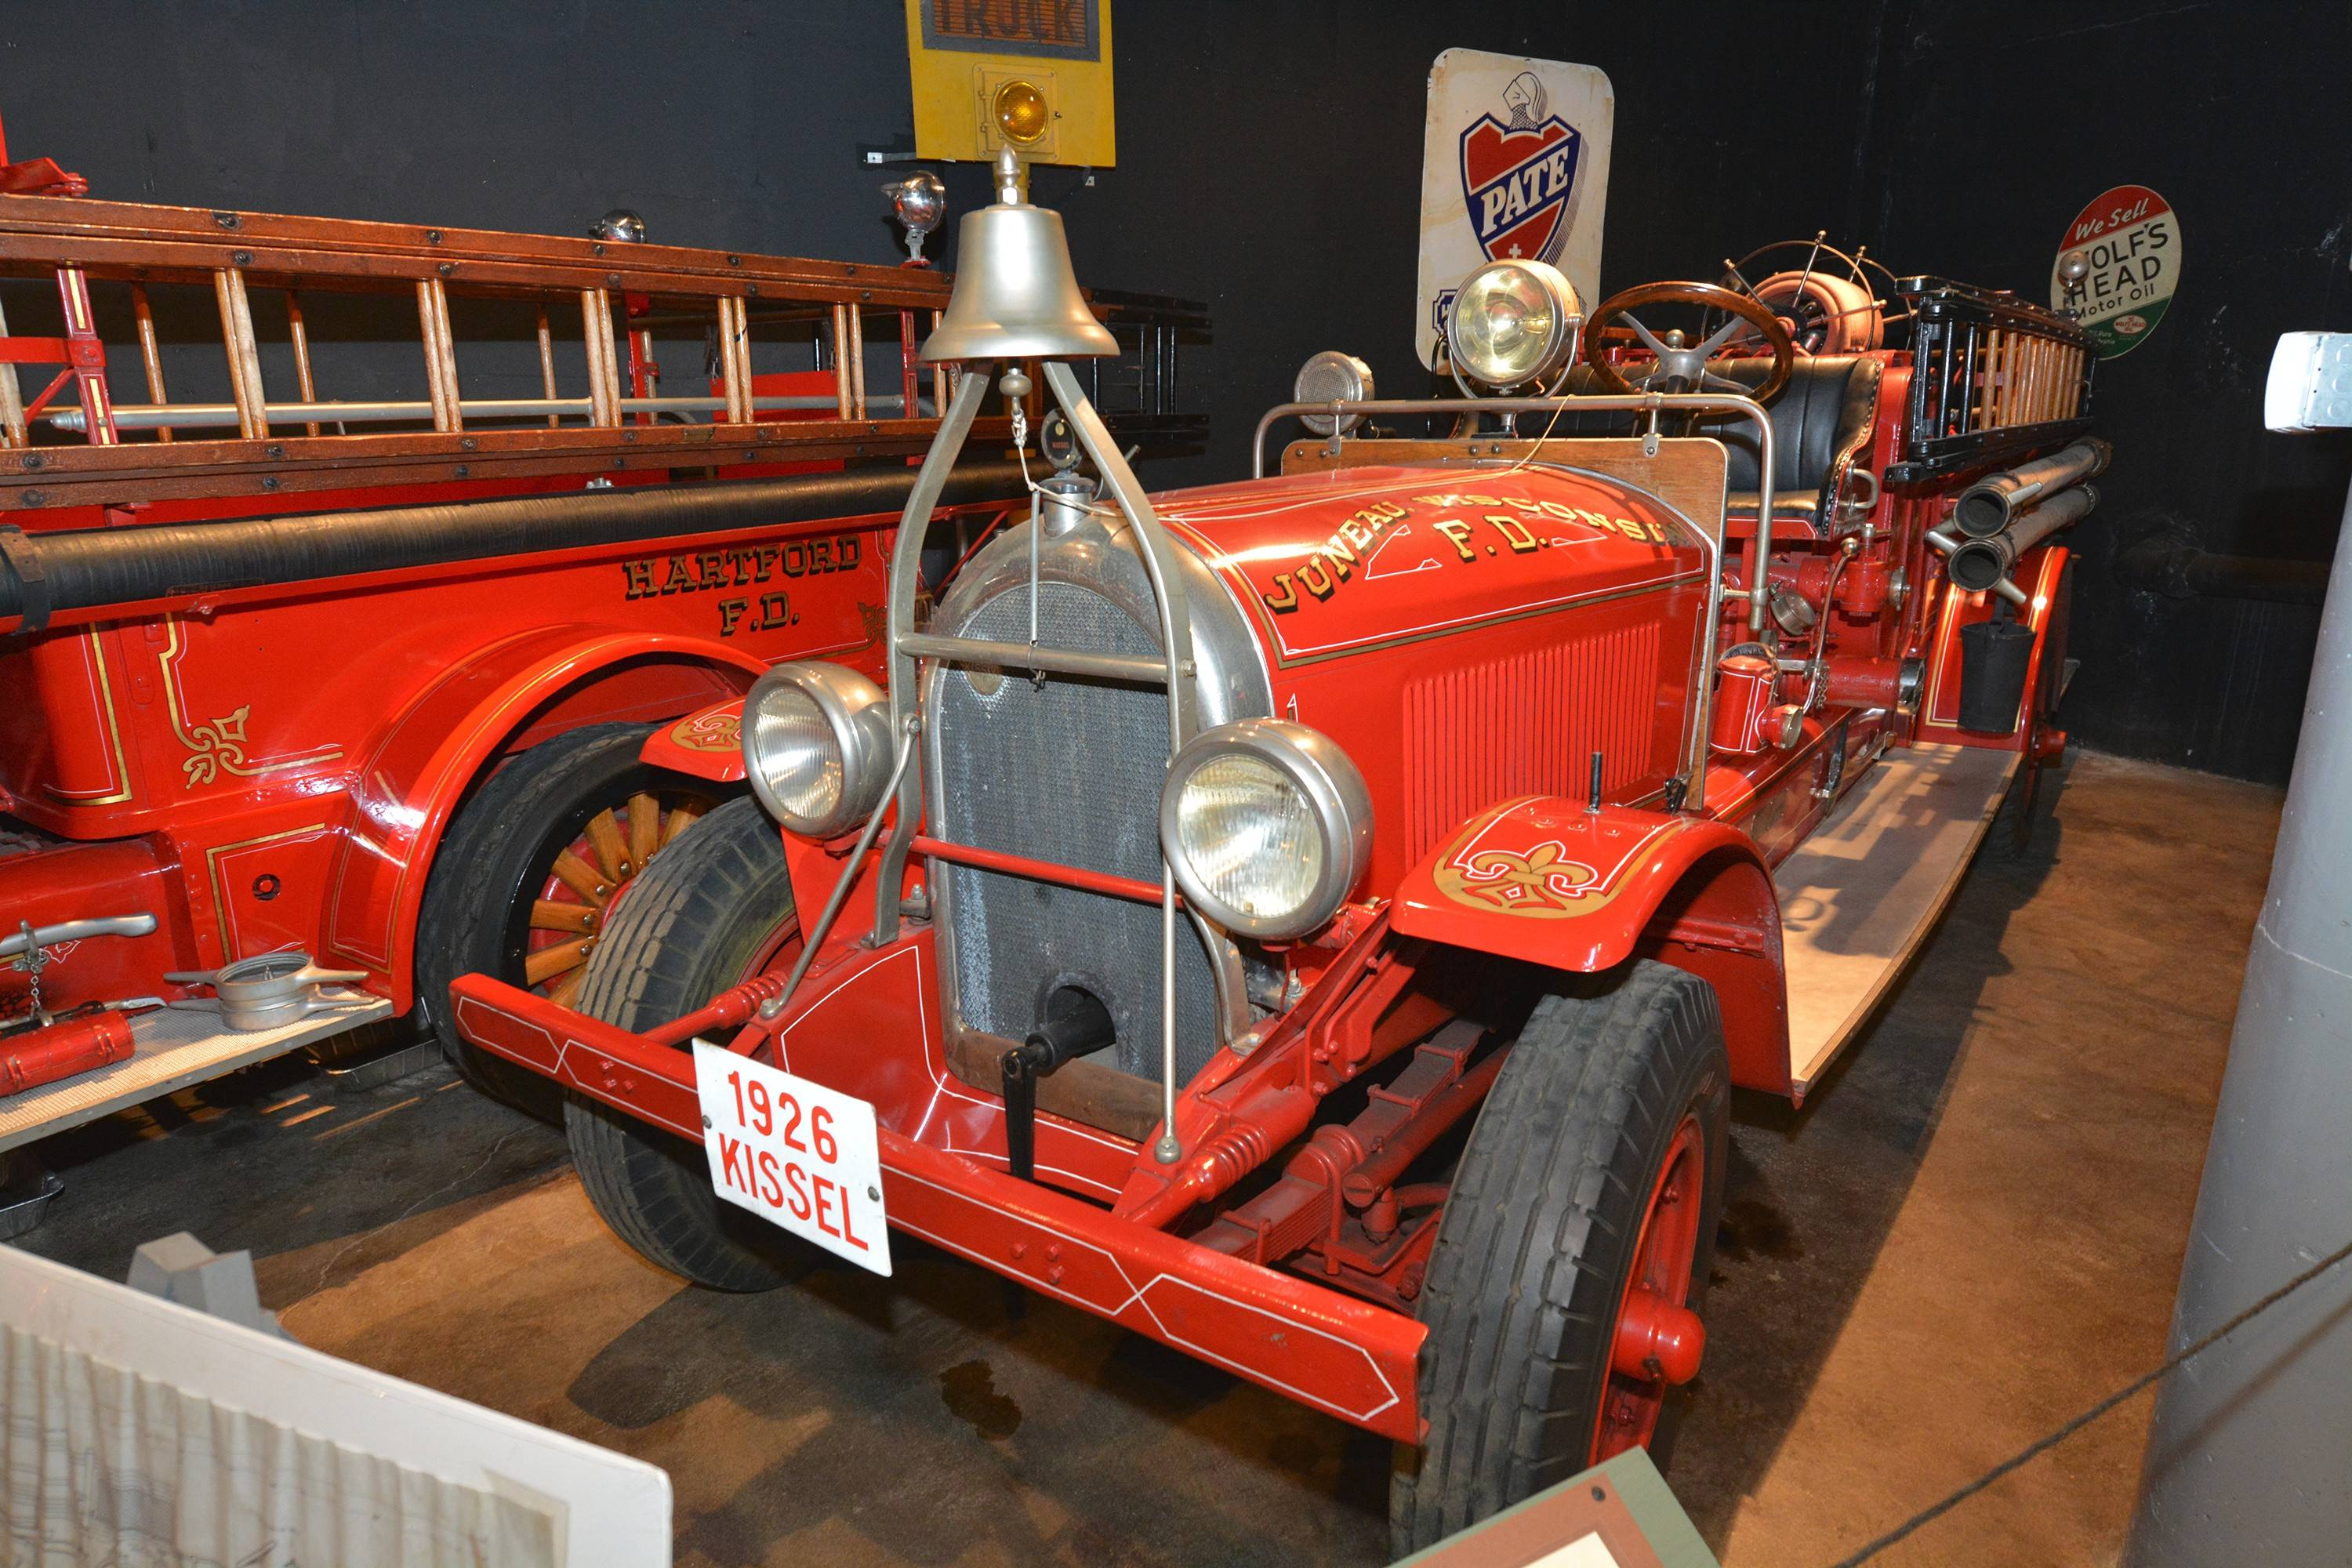 The Kissel Motor Car Co. expanded into fire trucks. This is a 1926 model. The truck on the left served the local community of Hartford, Wisconsin.